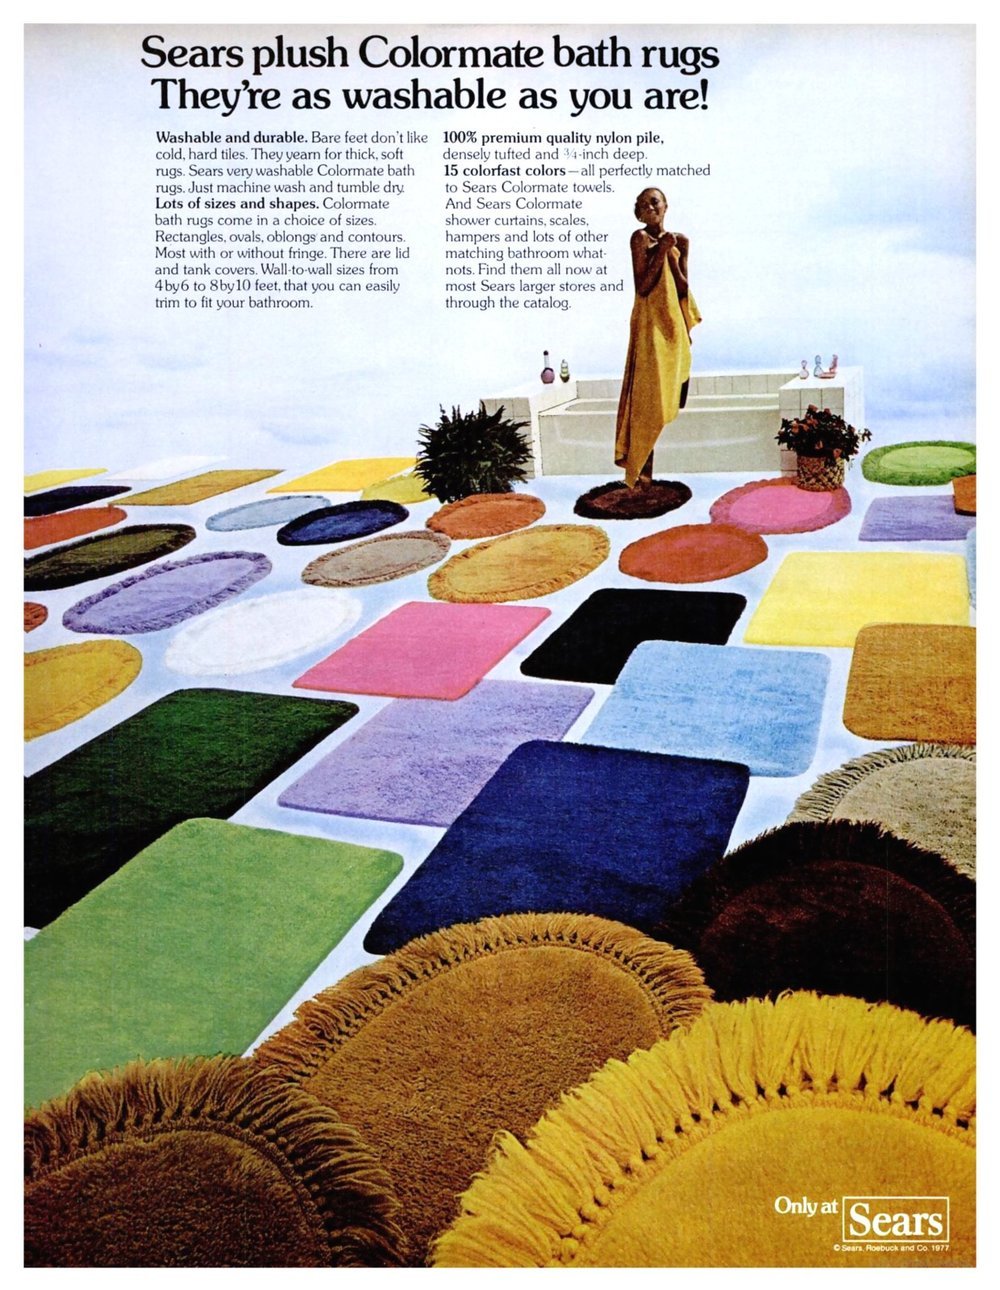 Sears Colormate Bath Rugs 1977